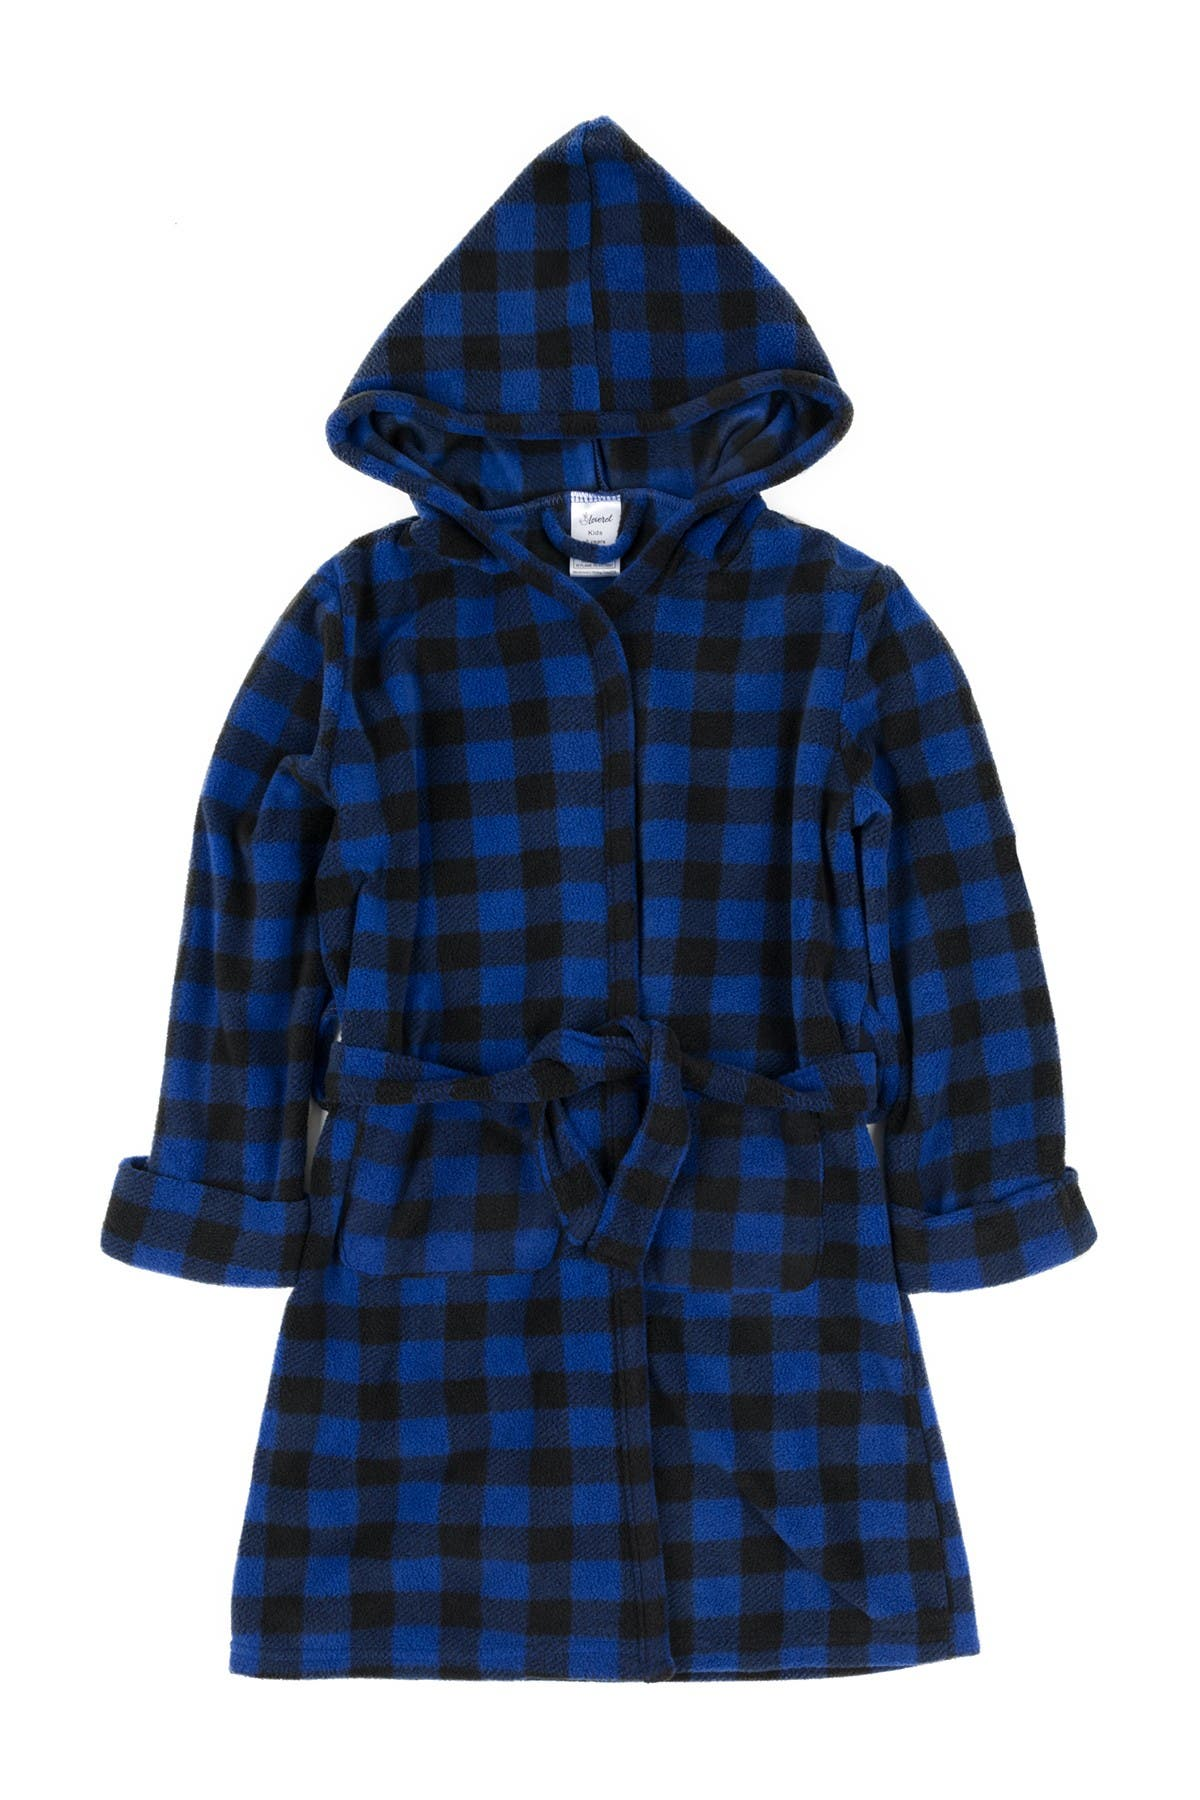 Image of Leveret Navy and Black Plaid Fleece Robe